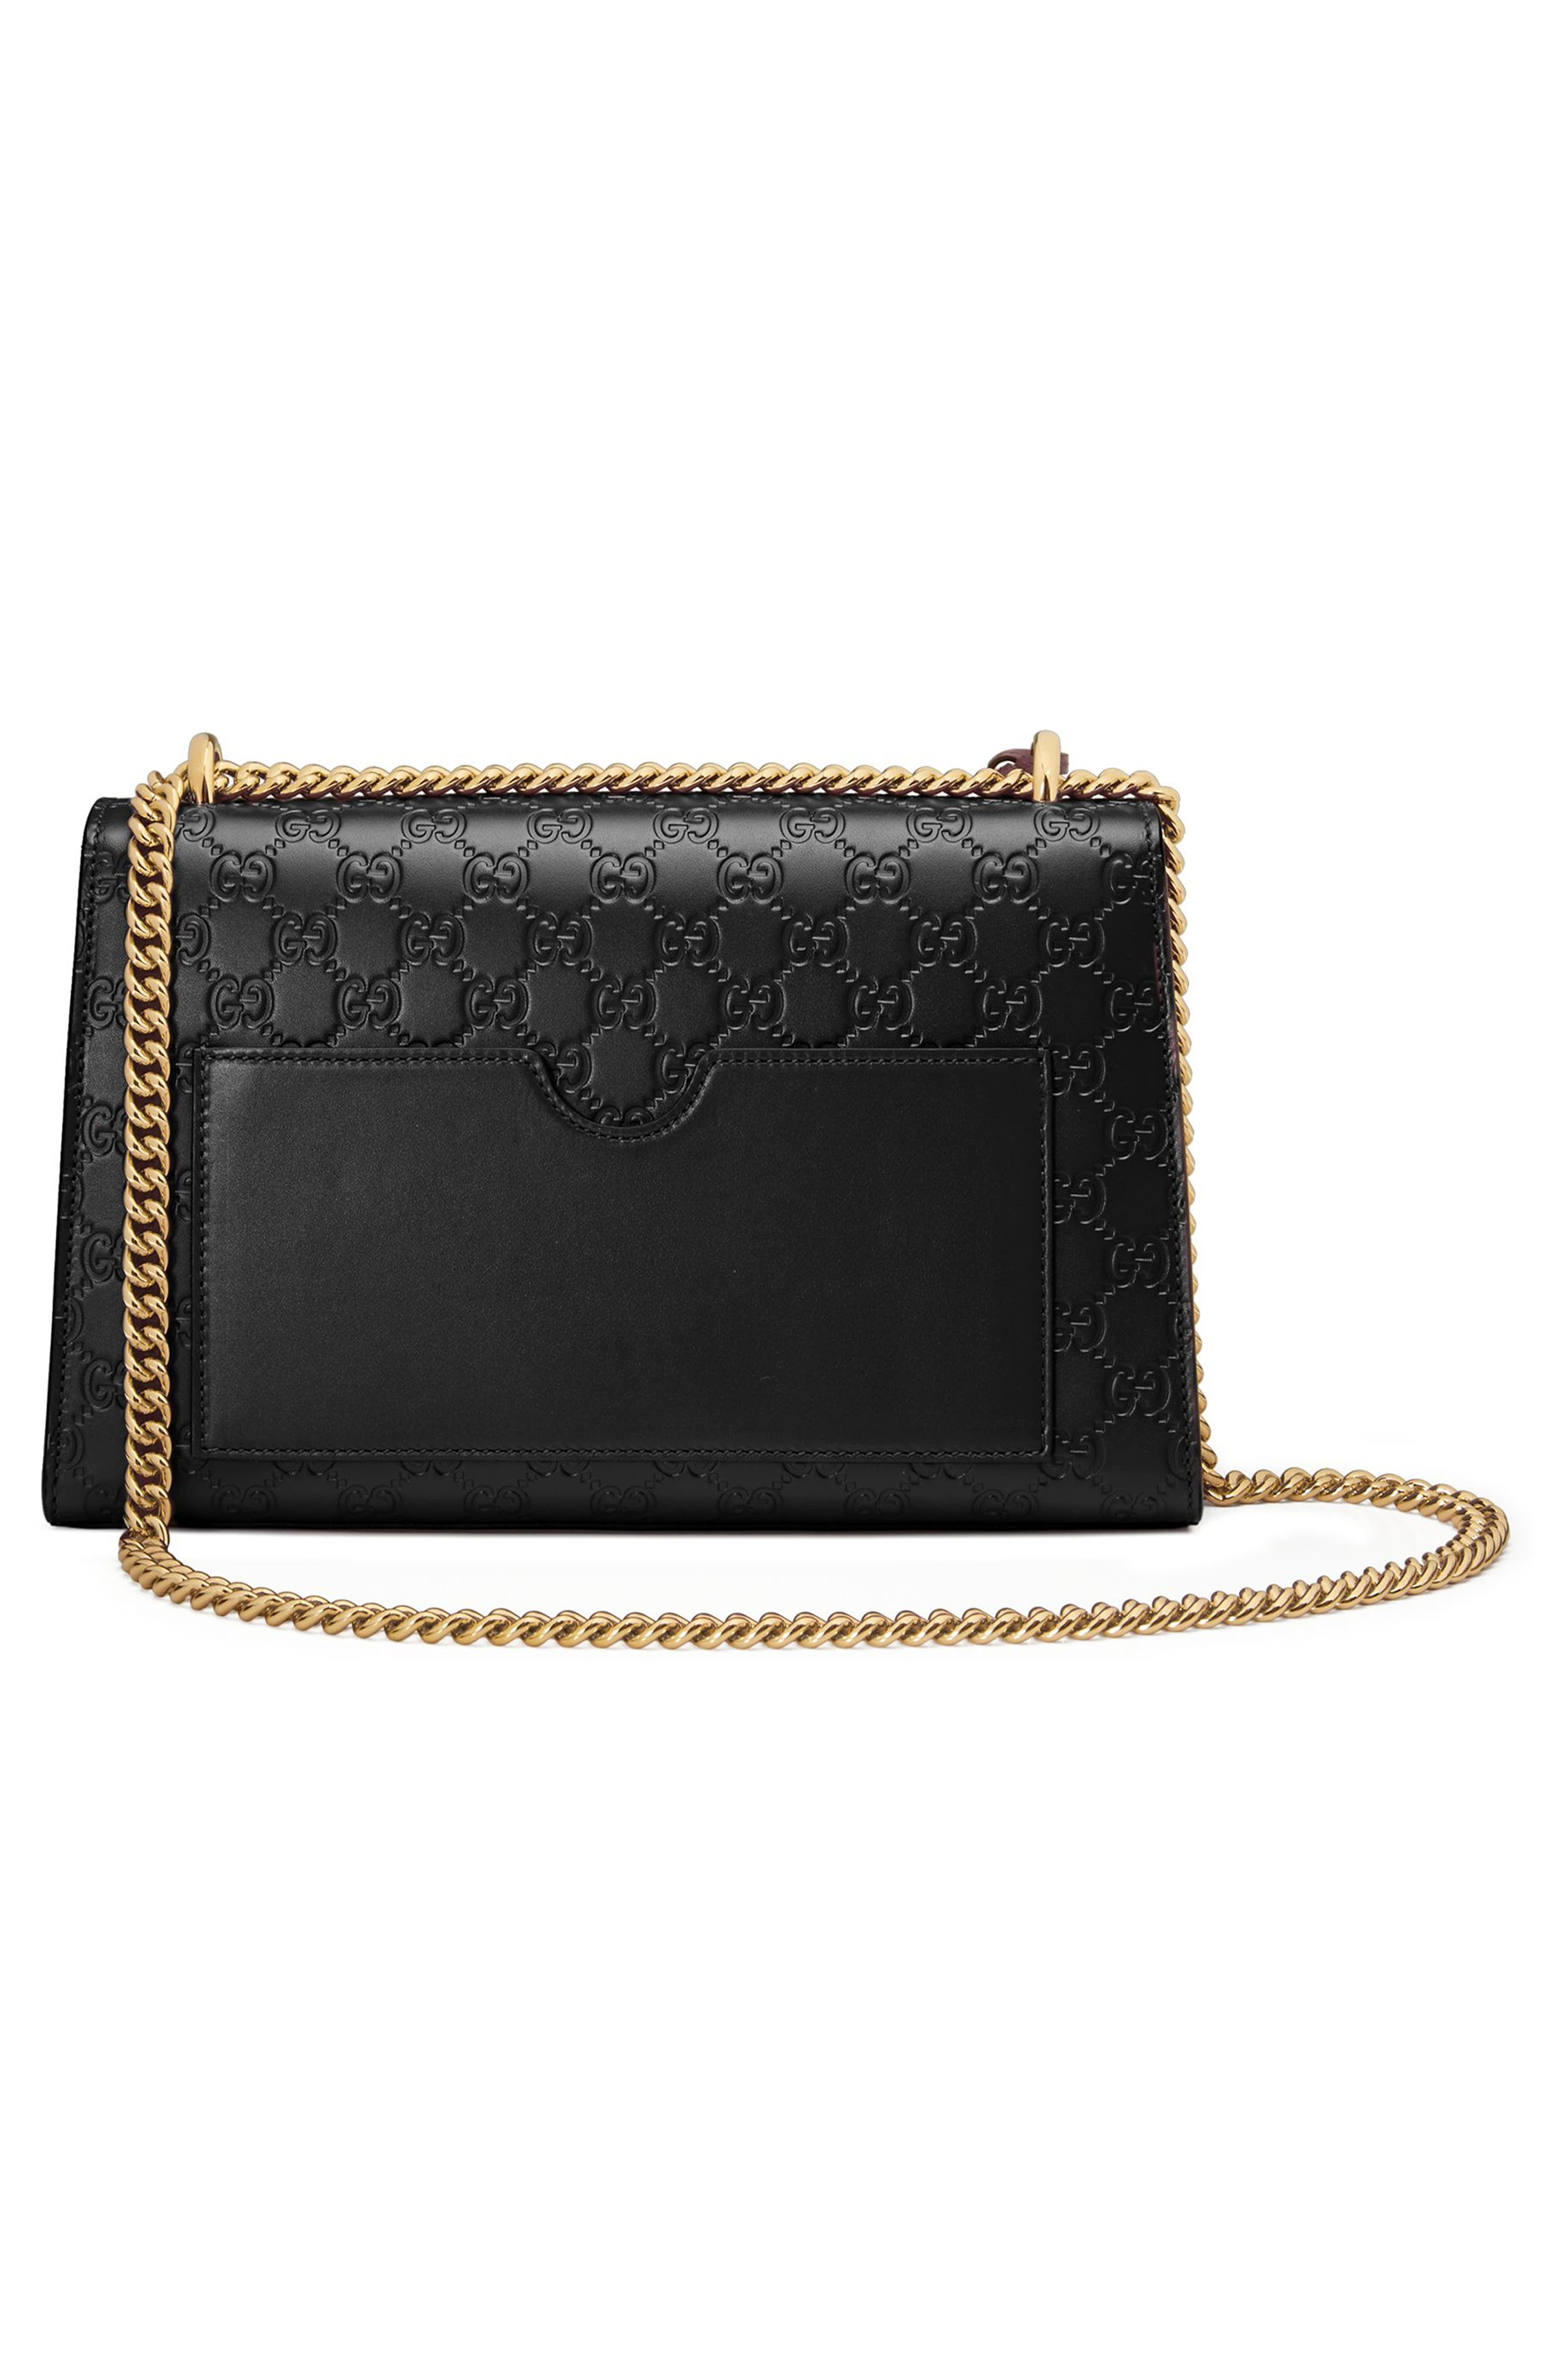 GUCCI, Medium Padlock Signature Leather Shoulder Bag, Alternate thumbnail 2, color, NERO